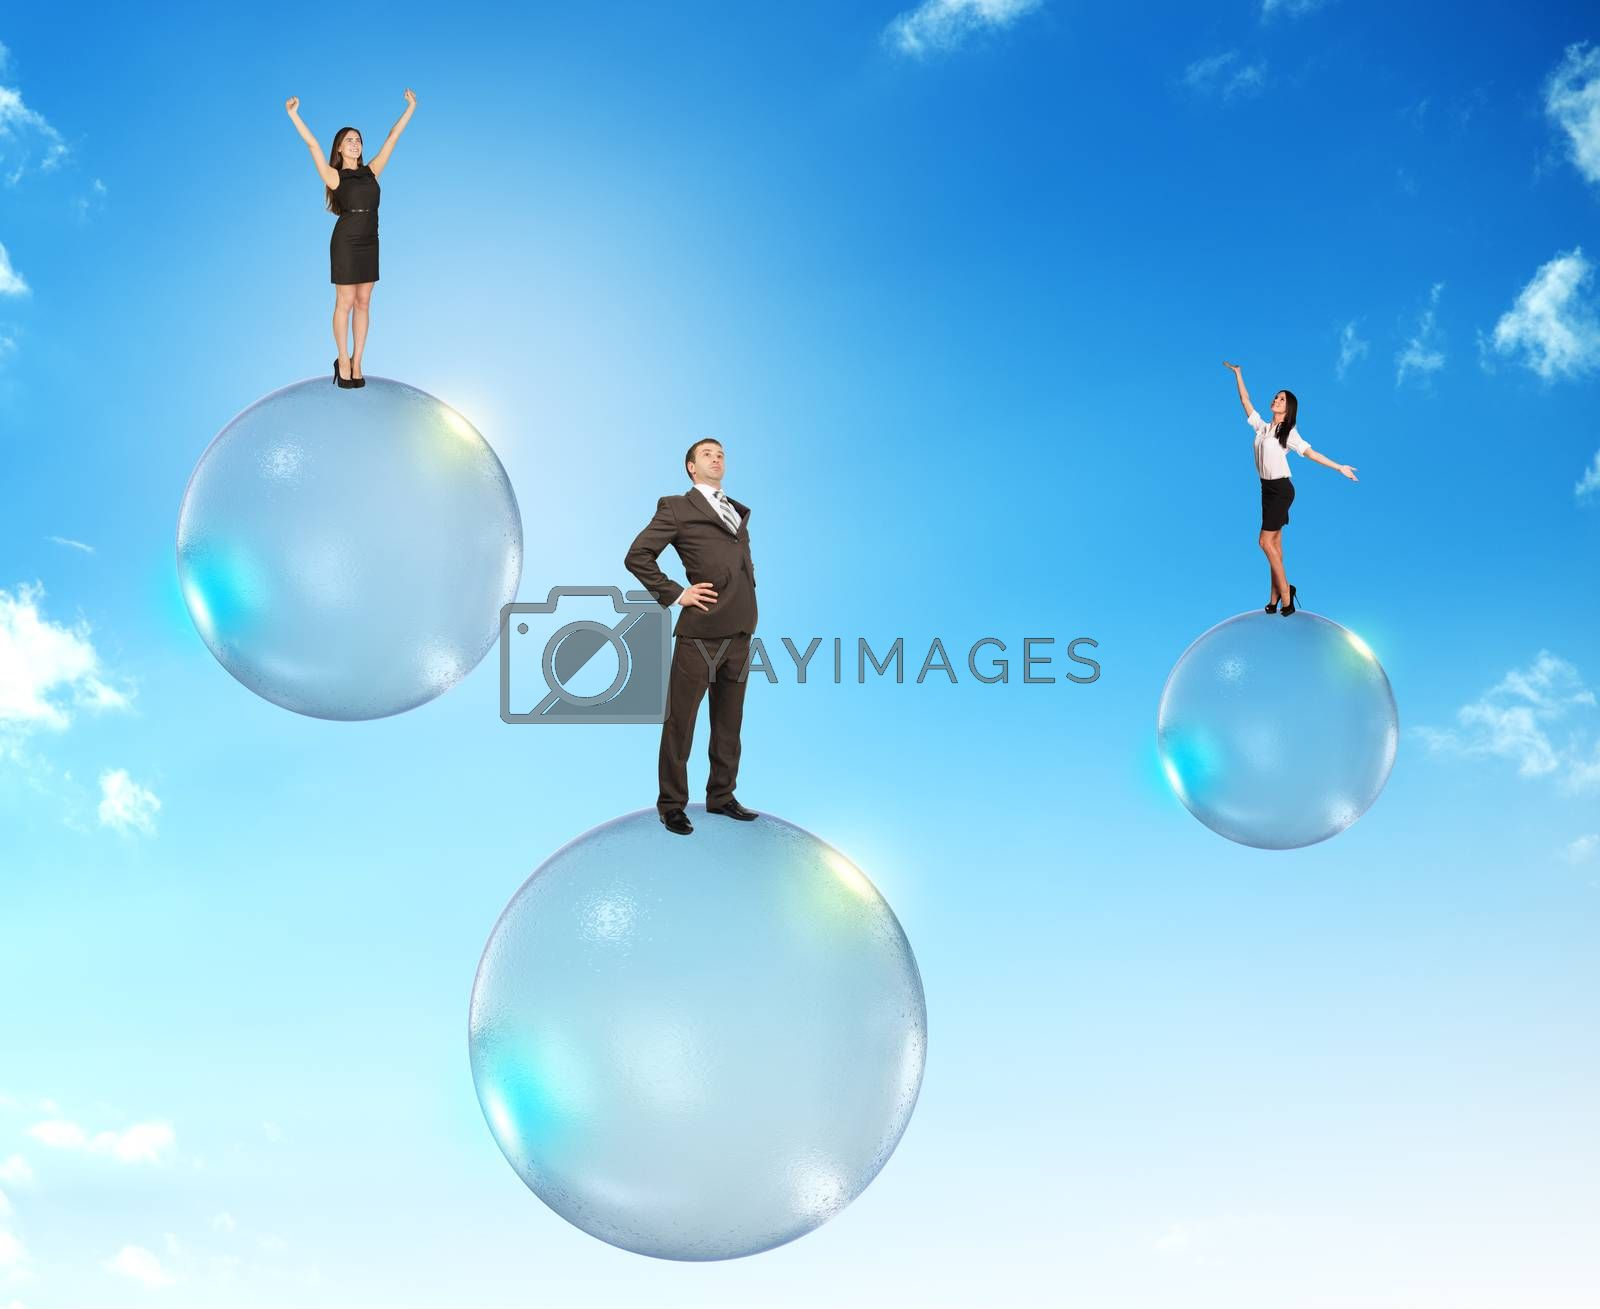 Set of businessmen on bubbles flying in sky with clouds